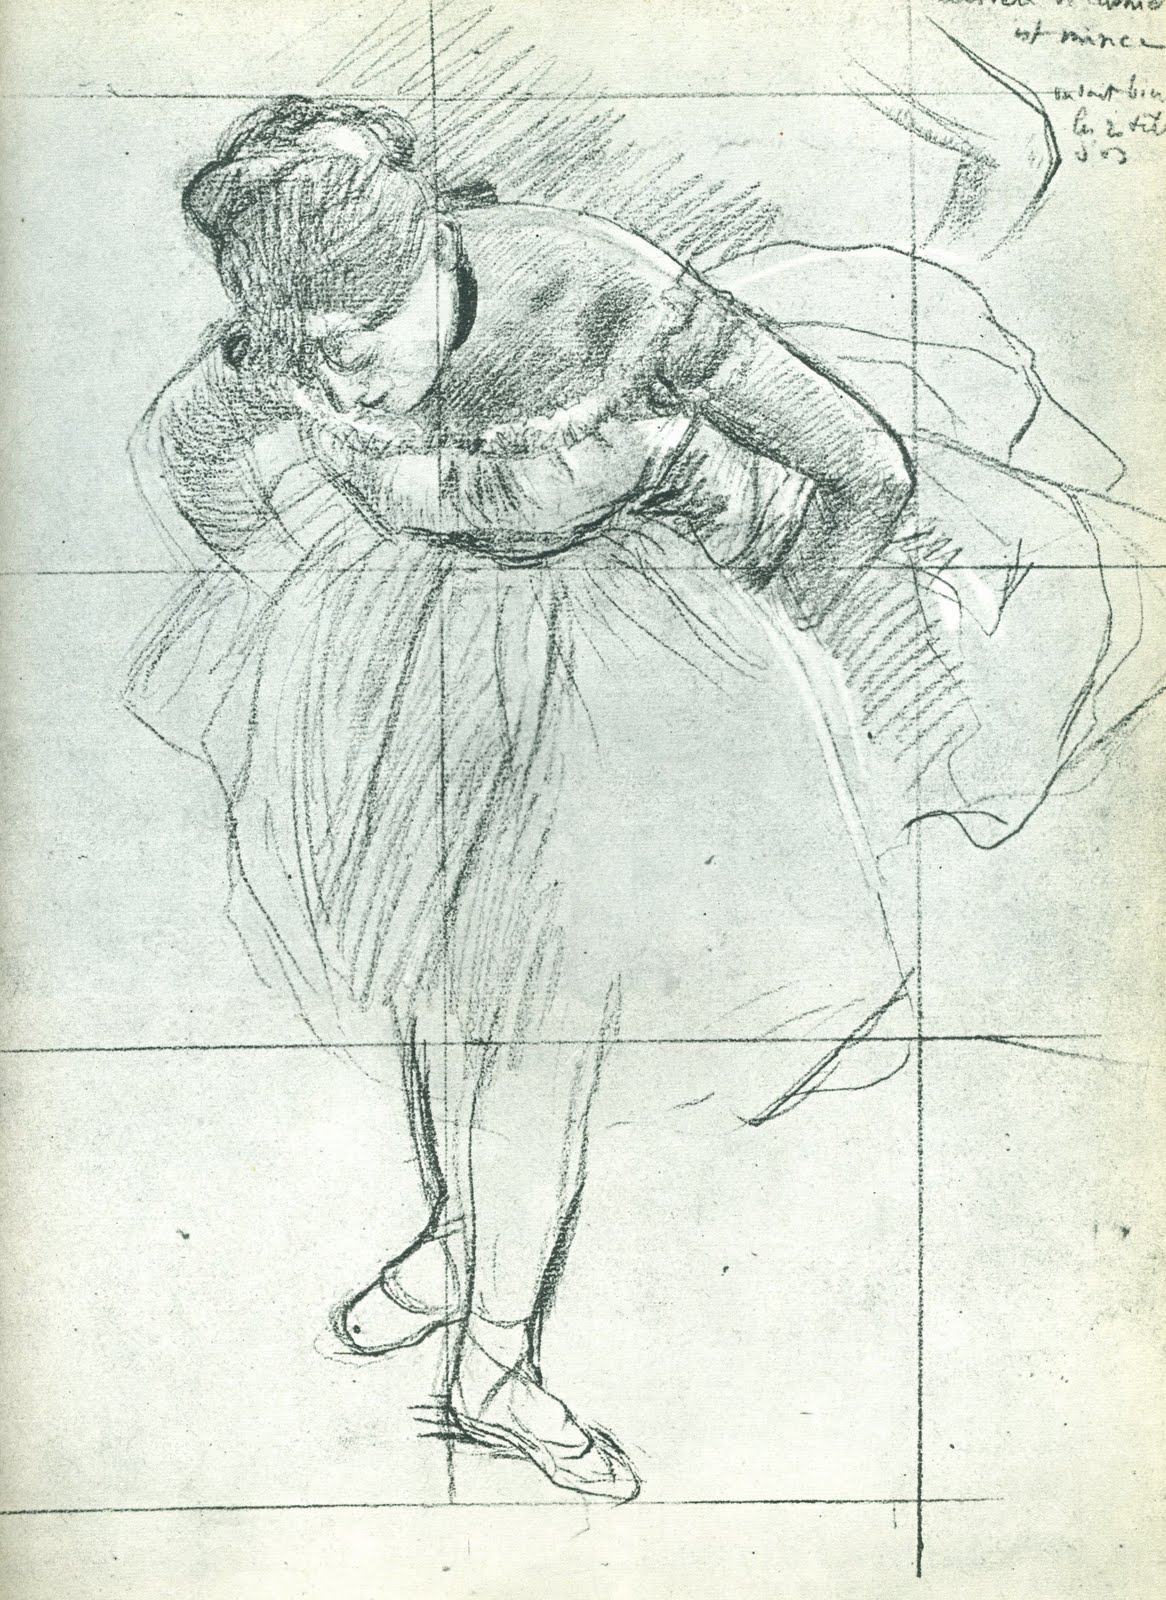 Degas: Drawings and Sketchbook